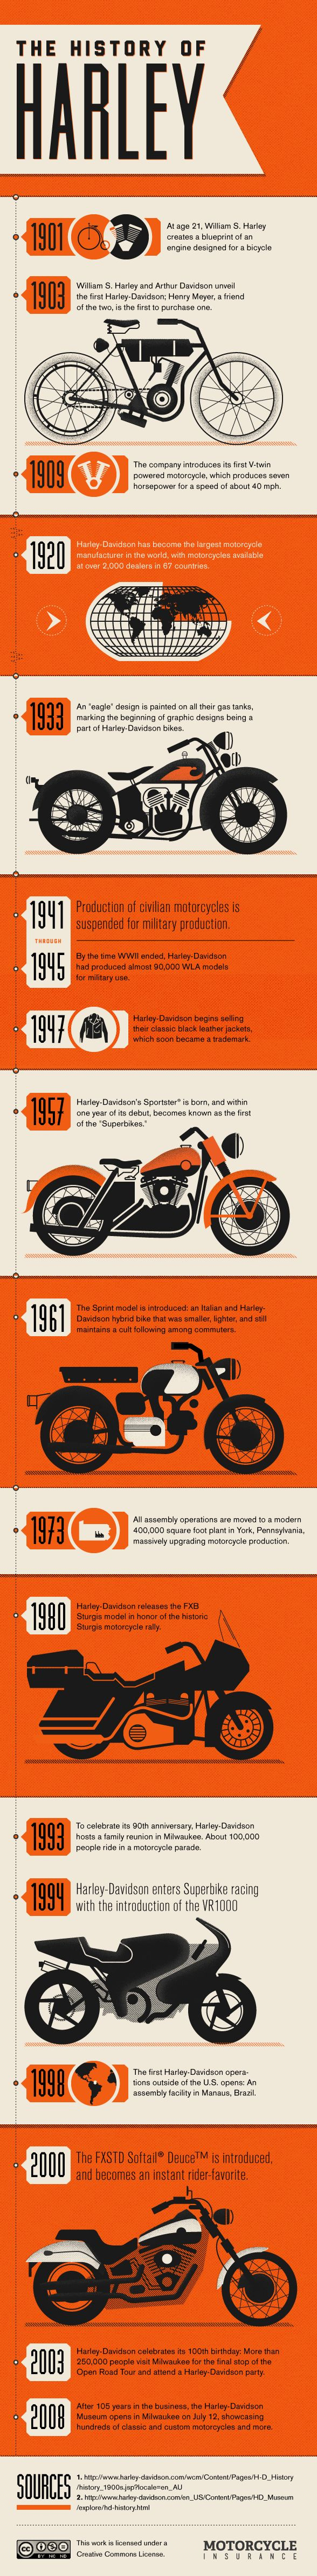 History of Harley Davidson Motorcyles / Visual Timeline / Infographic